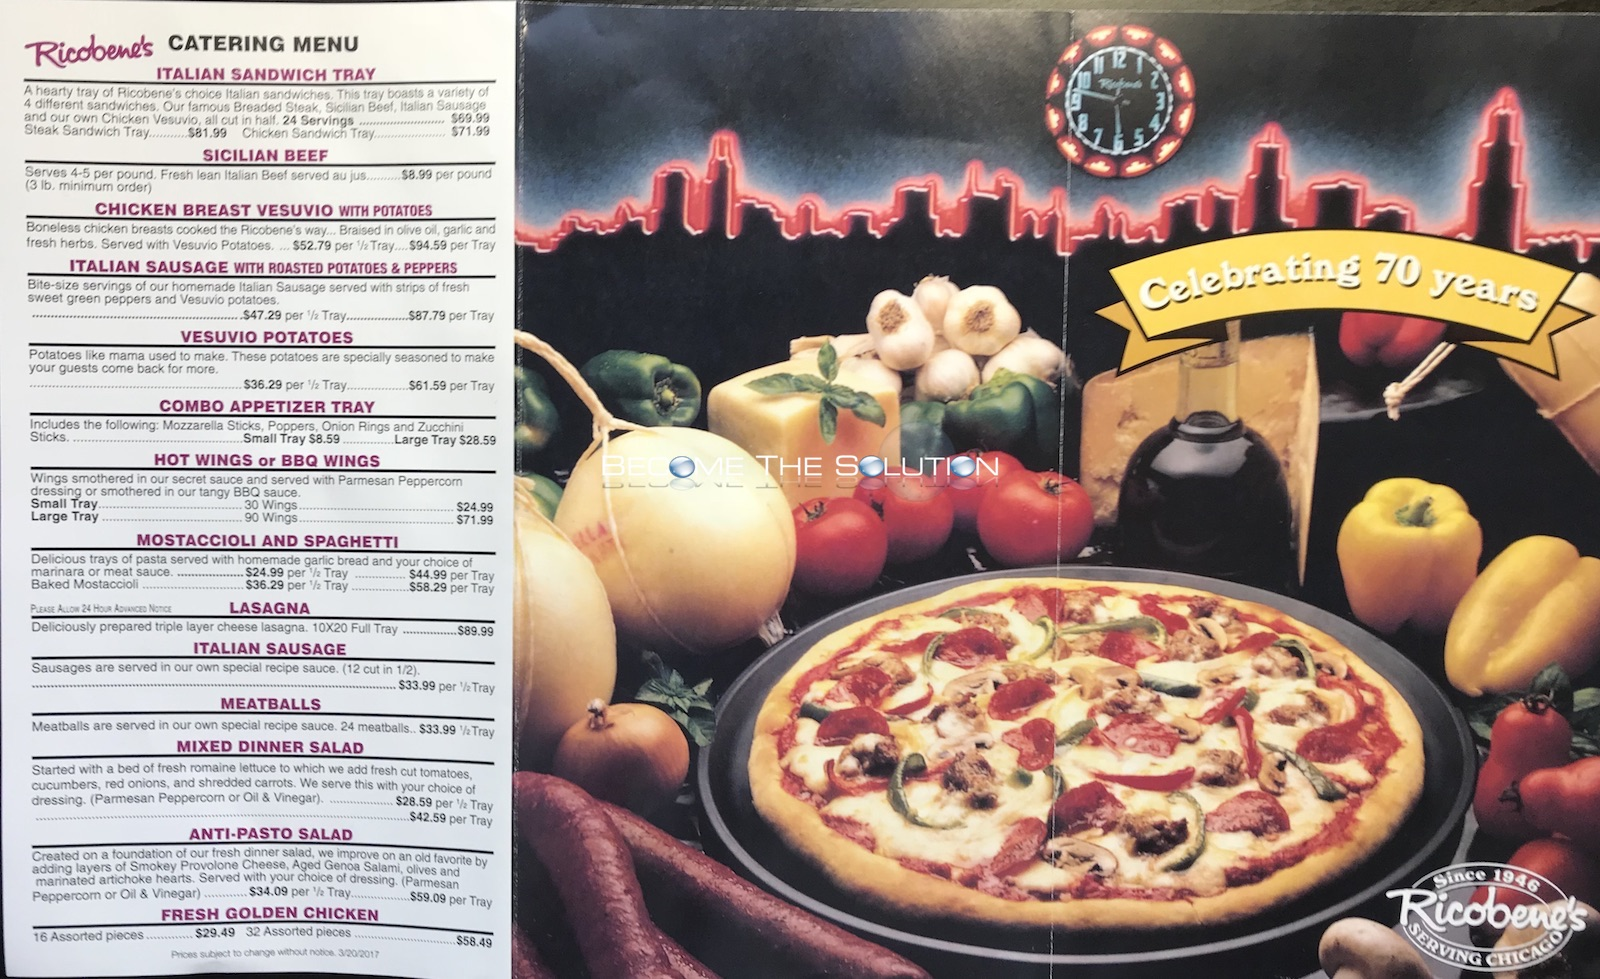 Ricobene's Chicago Menu 2